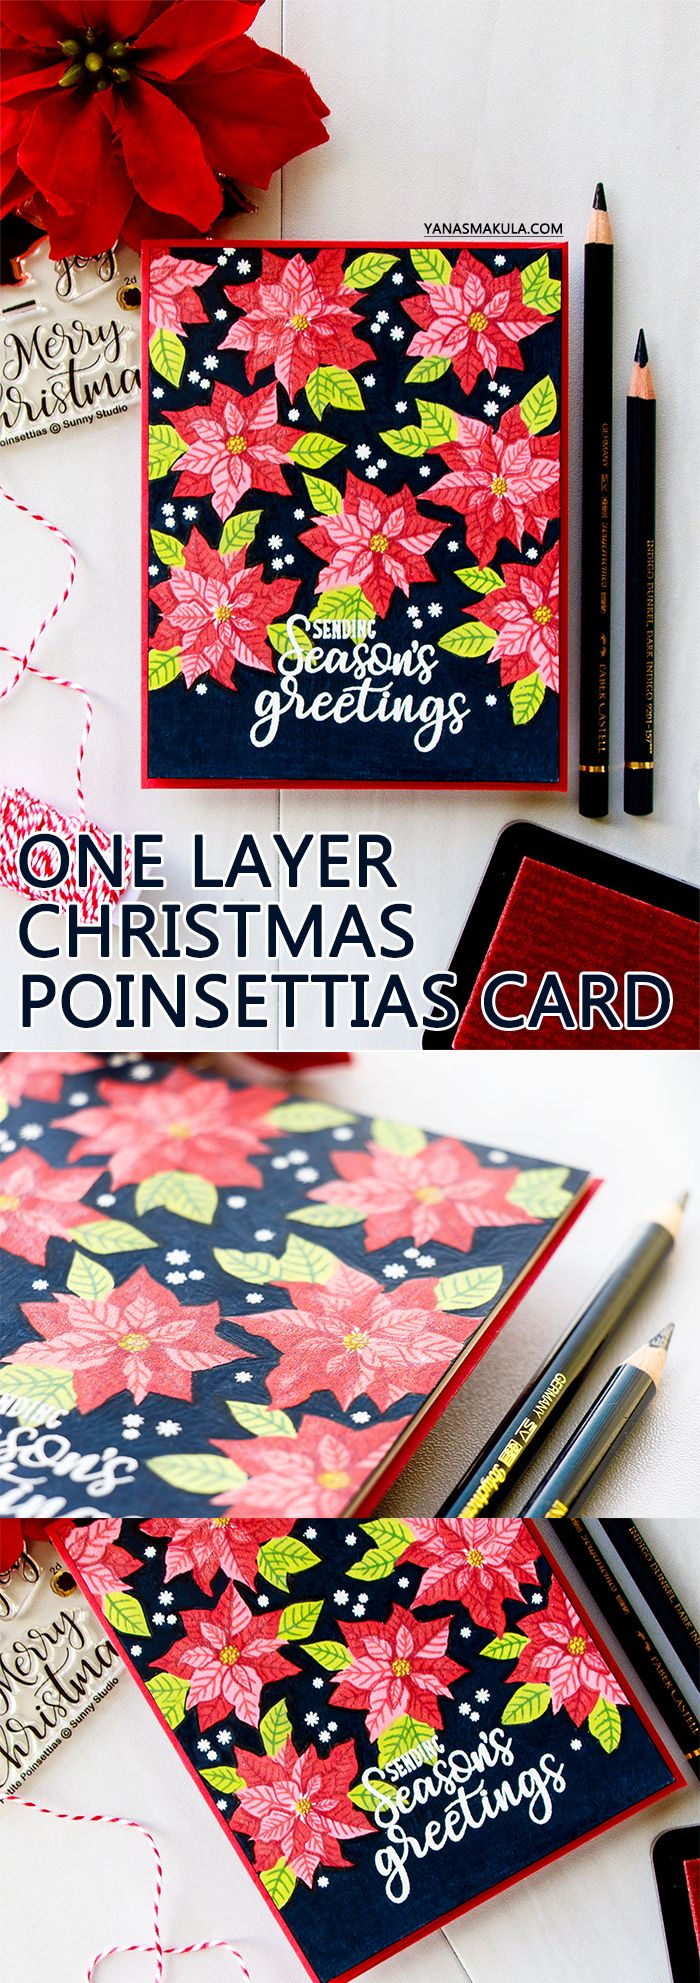 Sunny studio one layer vibrant christmas poinsettia card on dark sunny studio one layer vibrant christmas poinsettia card on dark background video christmas and winter cards pinterest poinsettia cards baditri Gallery